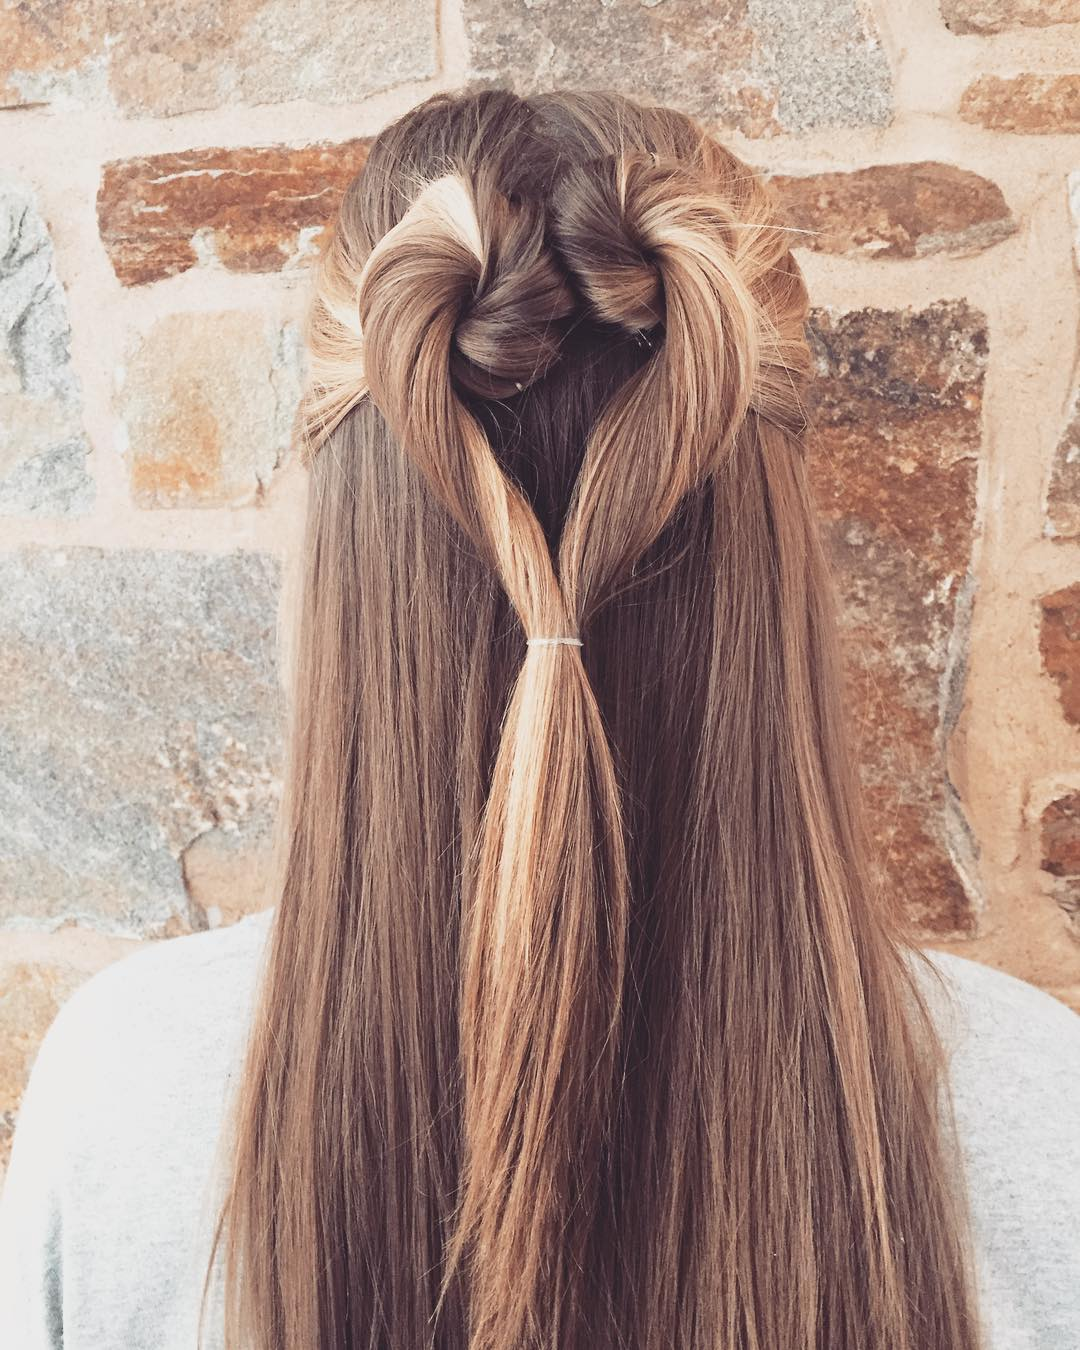 Twisted Half Up And Half Down Heart Hairstyle